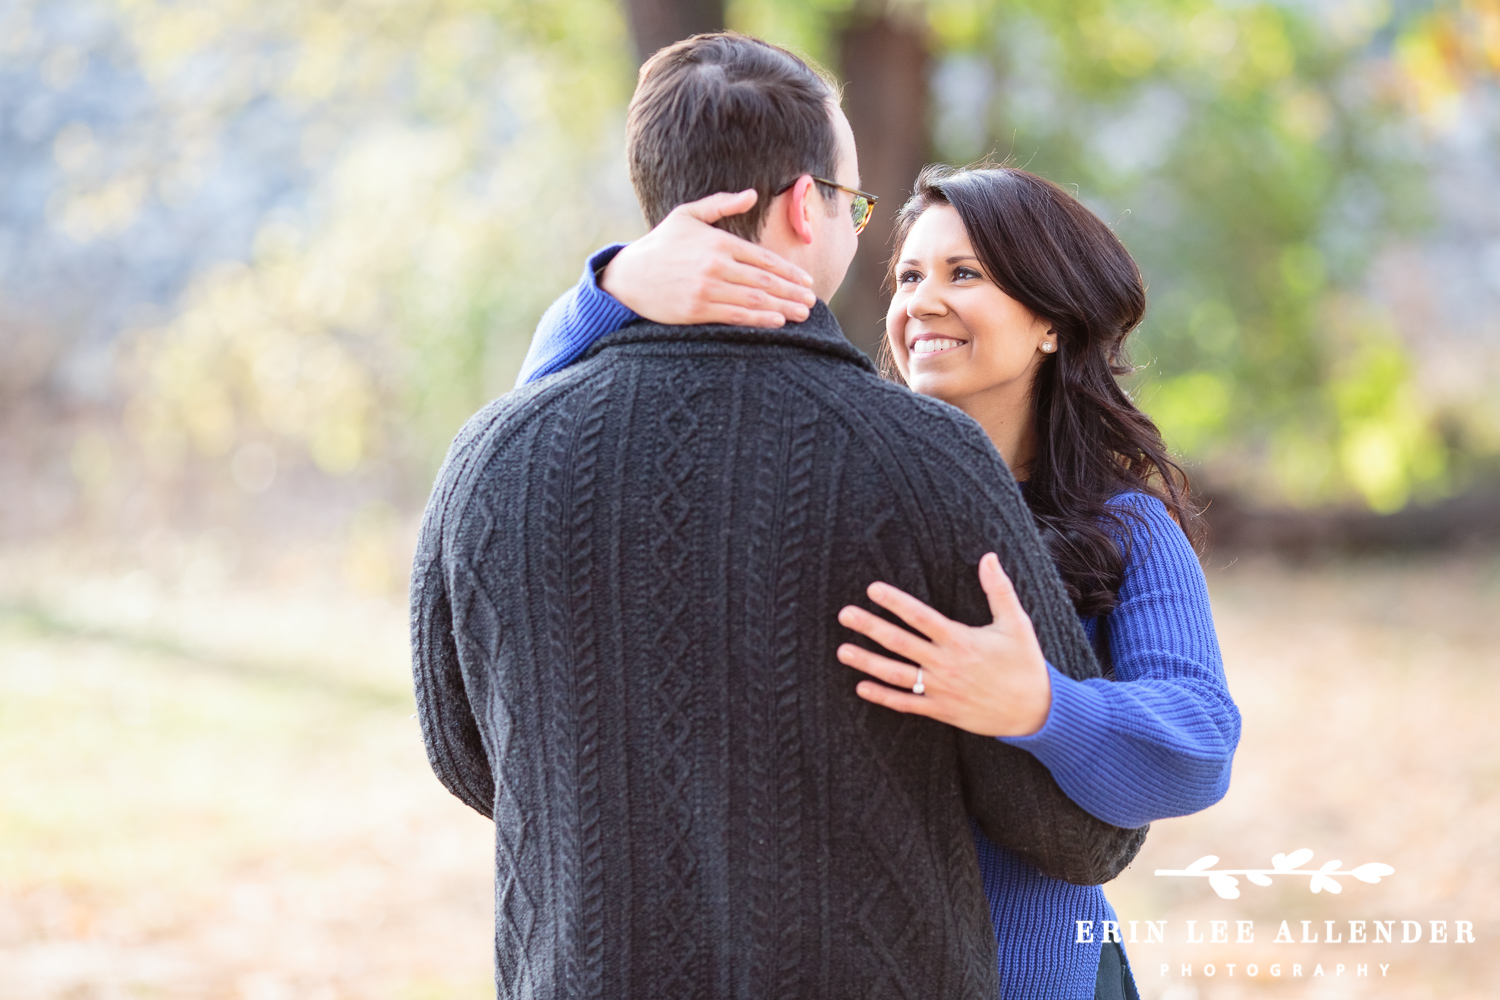 Richland_Greenway_Engagement_Session